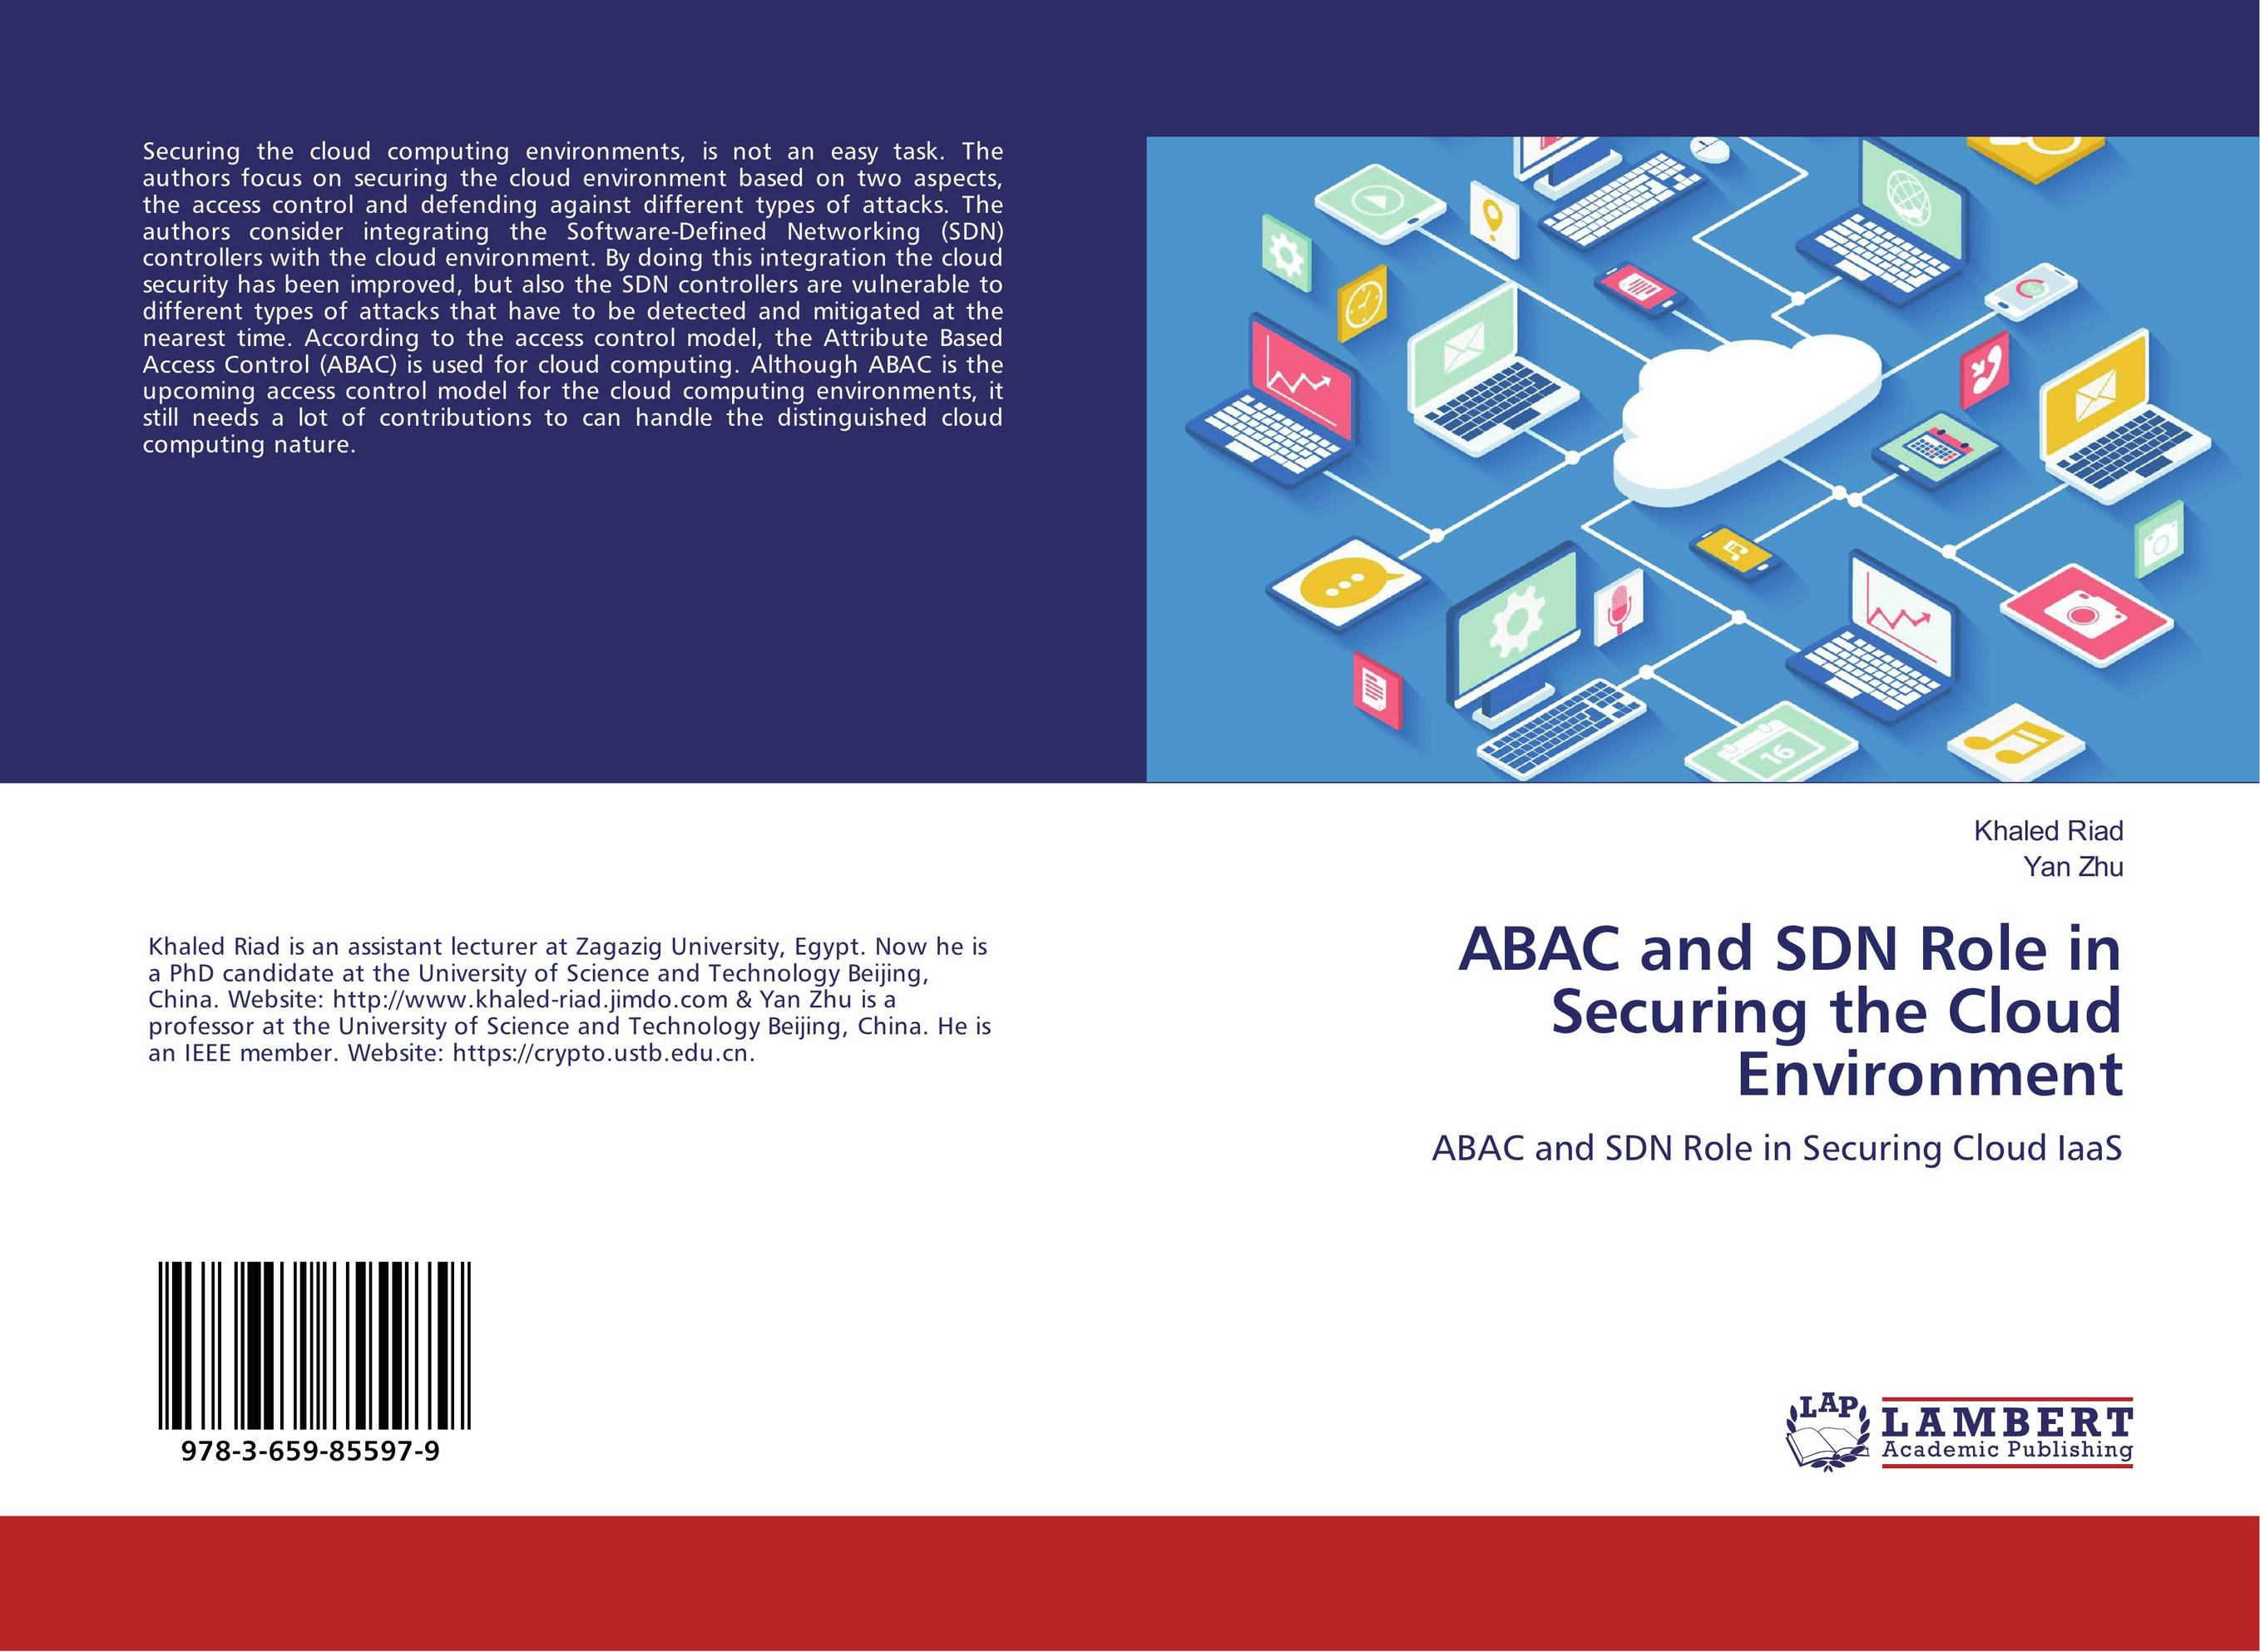 ABAC and SDN Role in Securing the Cloud Environment cloud computing